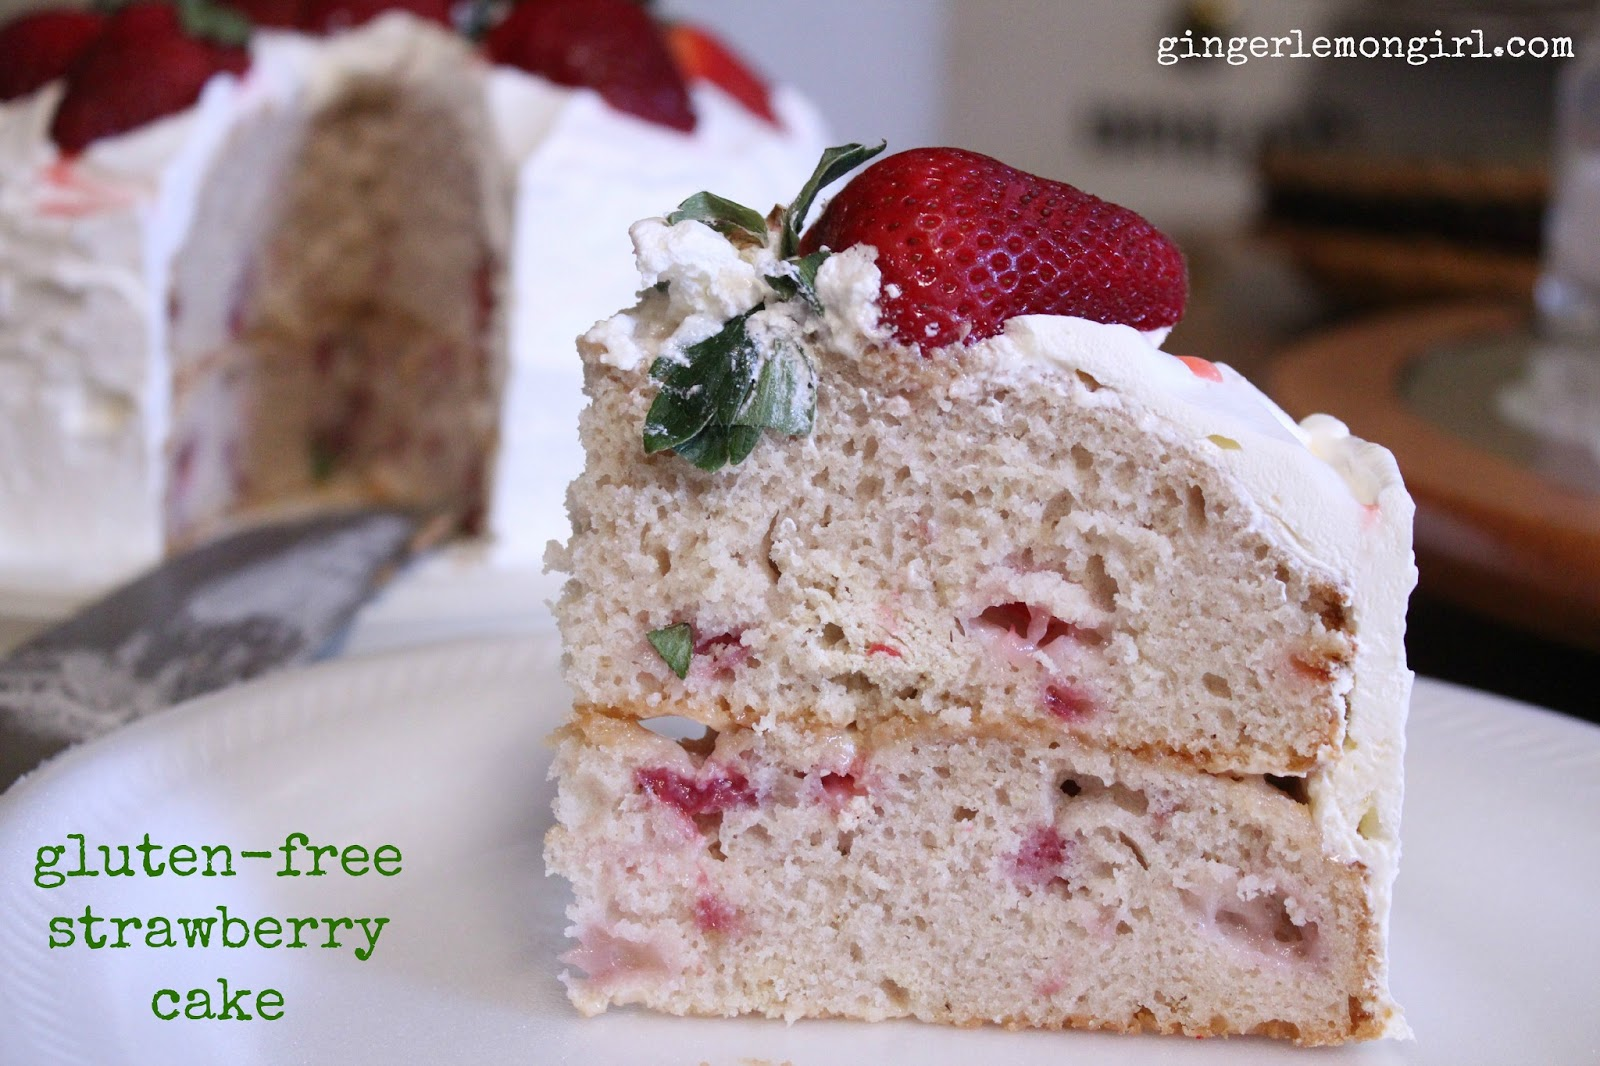 Ginger Lemon Girl: Gluten-Free Strawberry Cake Recipe